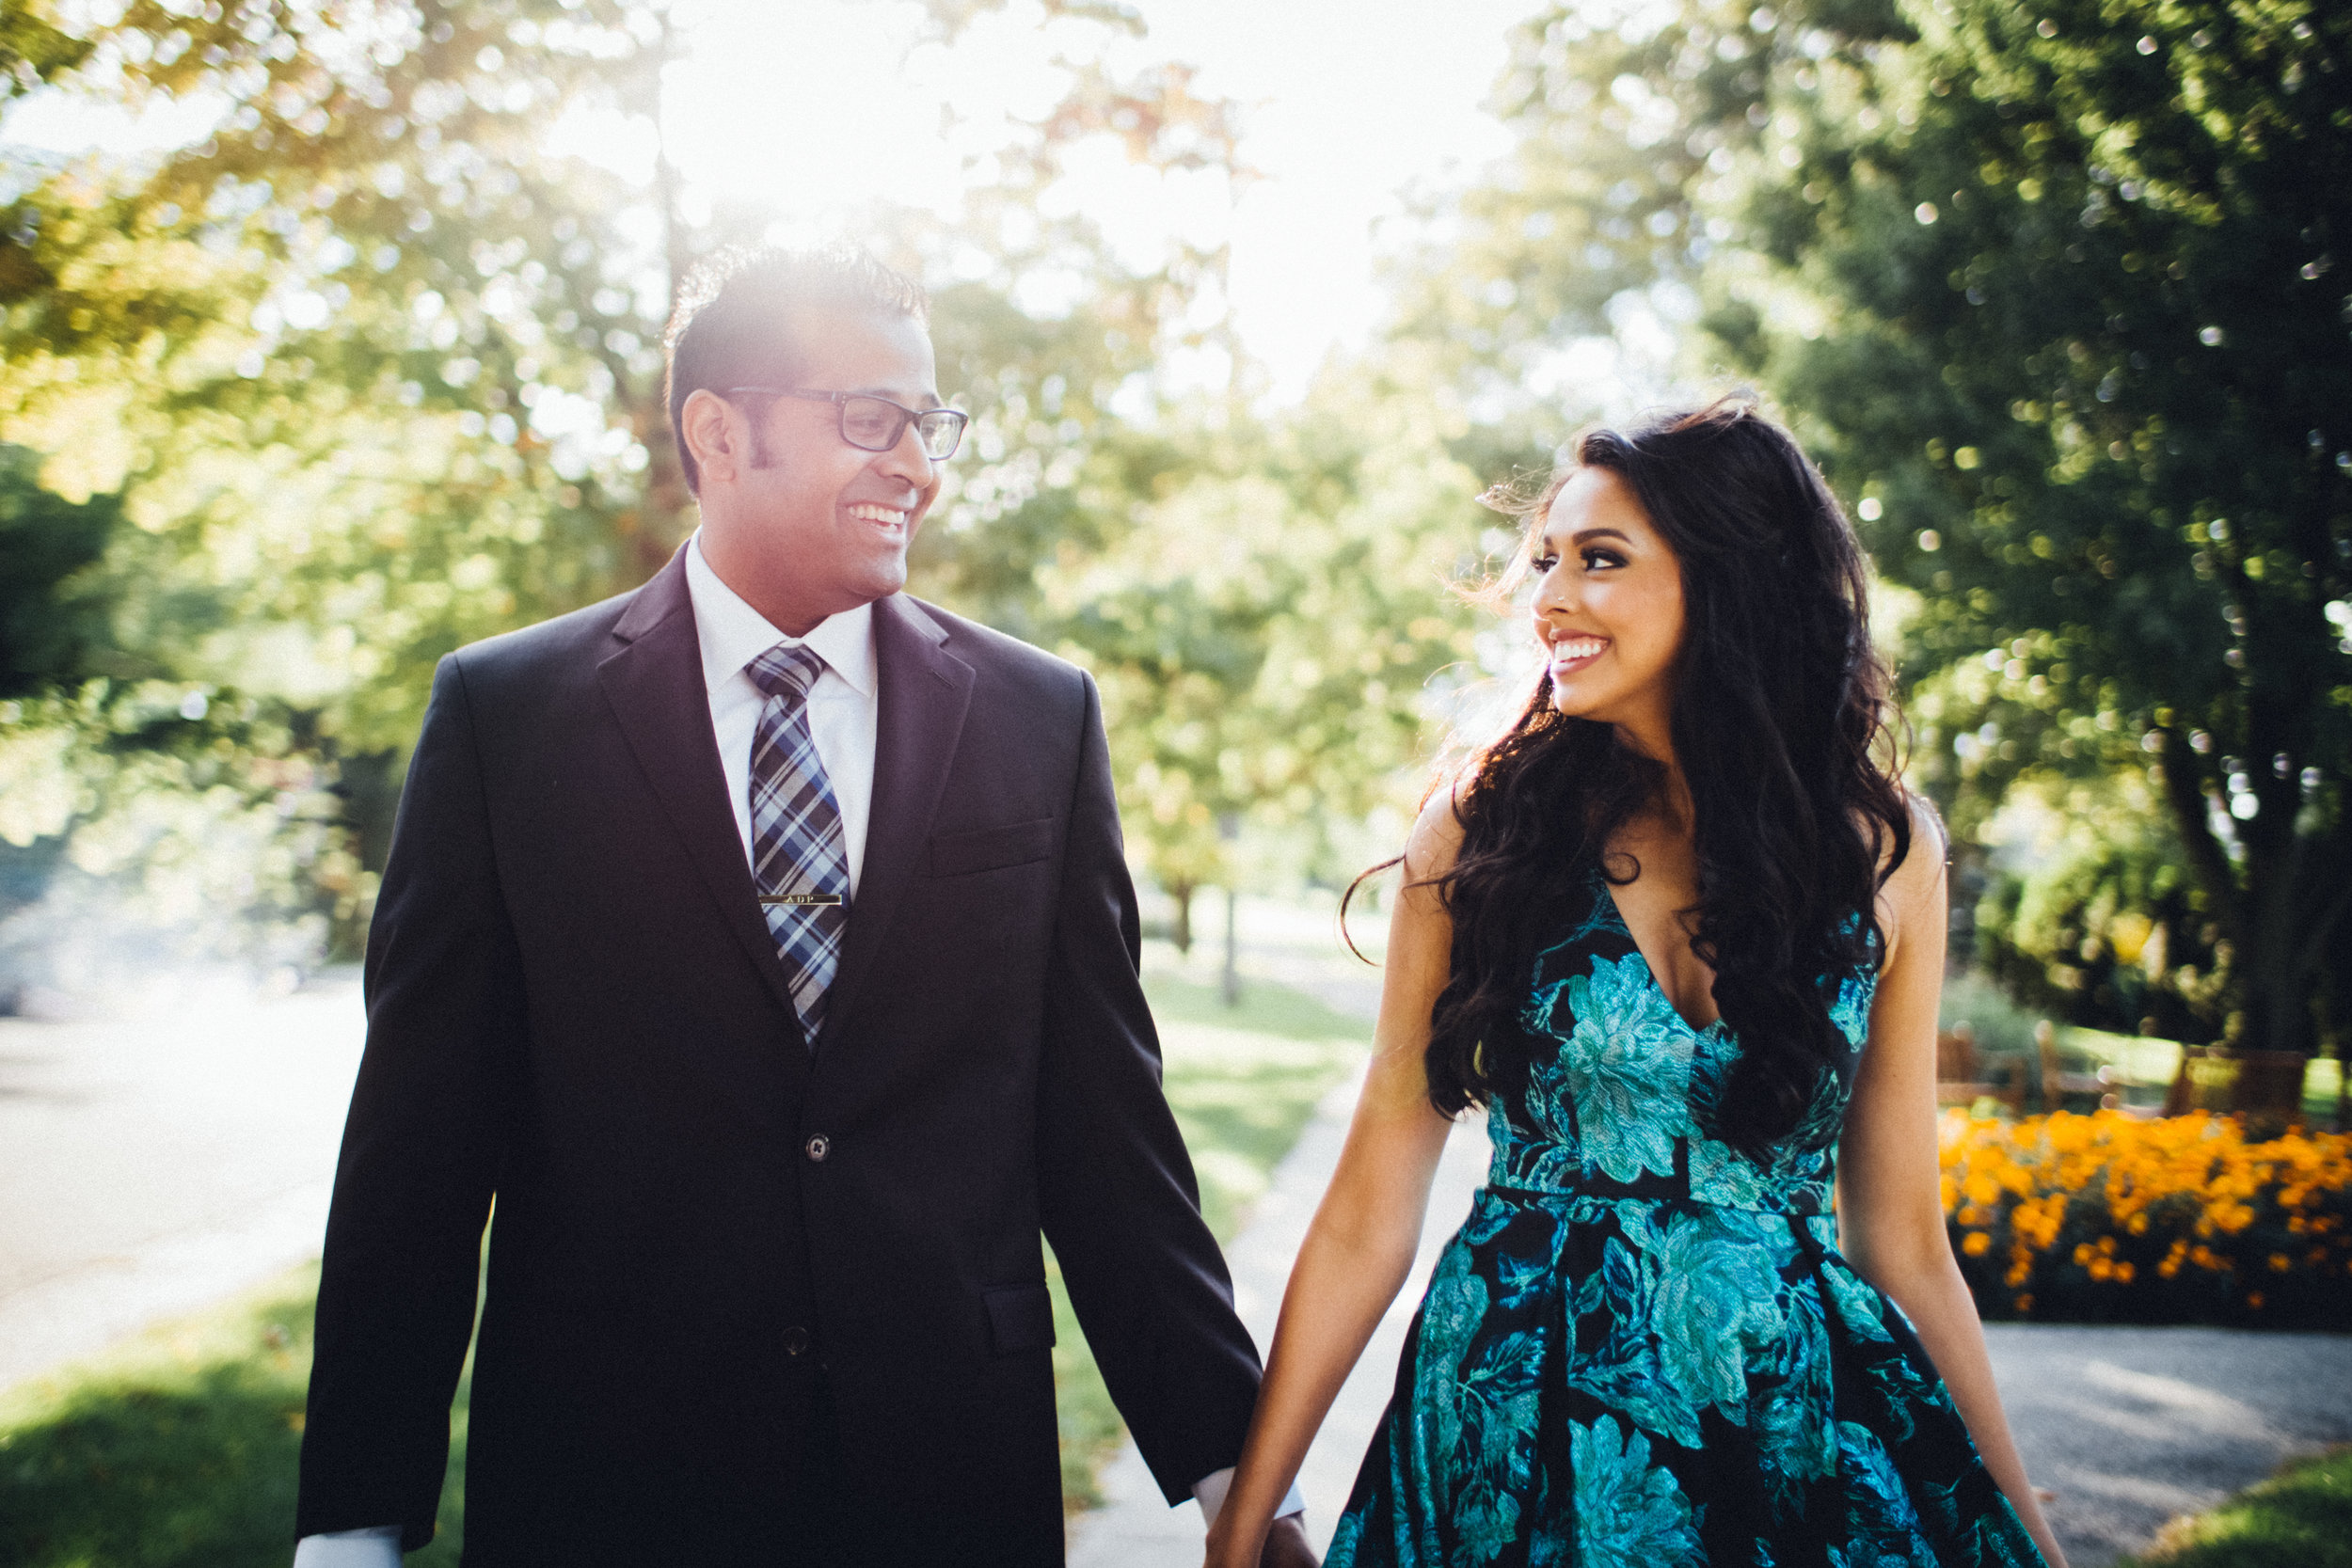 Shadow-Shine-Pictures-Corporate-Narrative-Wedding-Videographer-Videographers-Videography-Photography-Photographer-West-Michigan-Grand-Rapids-010